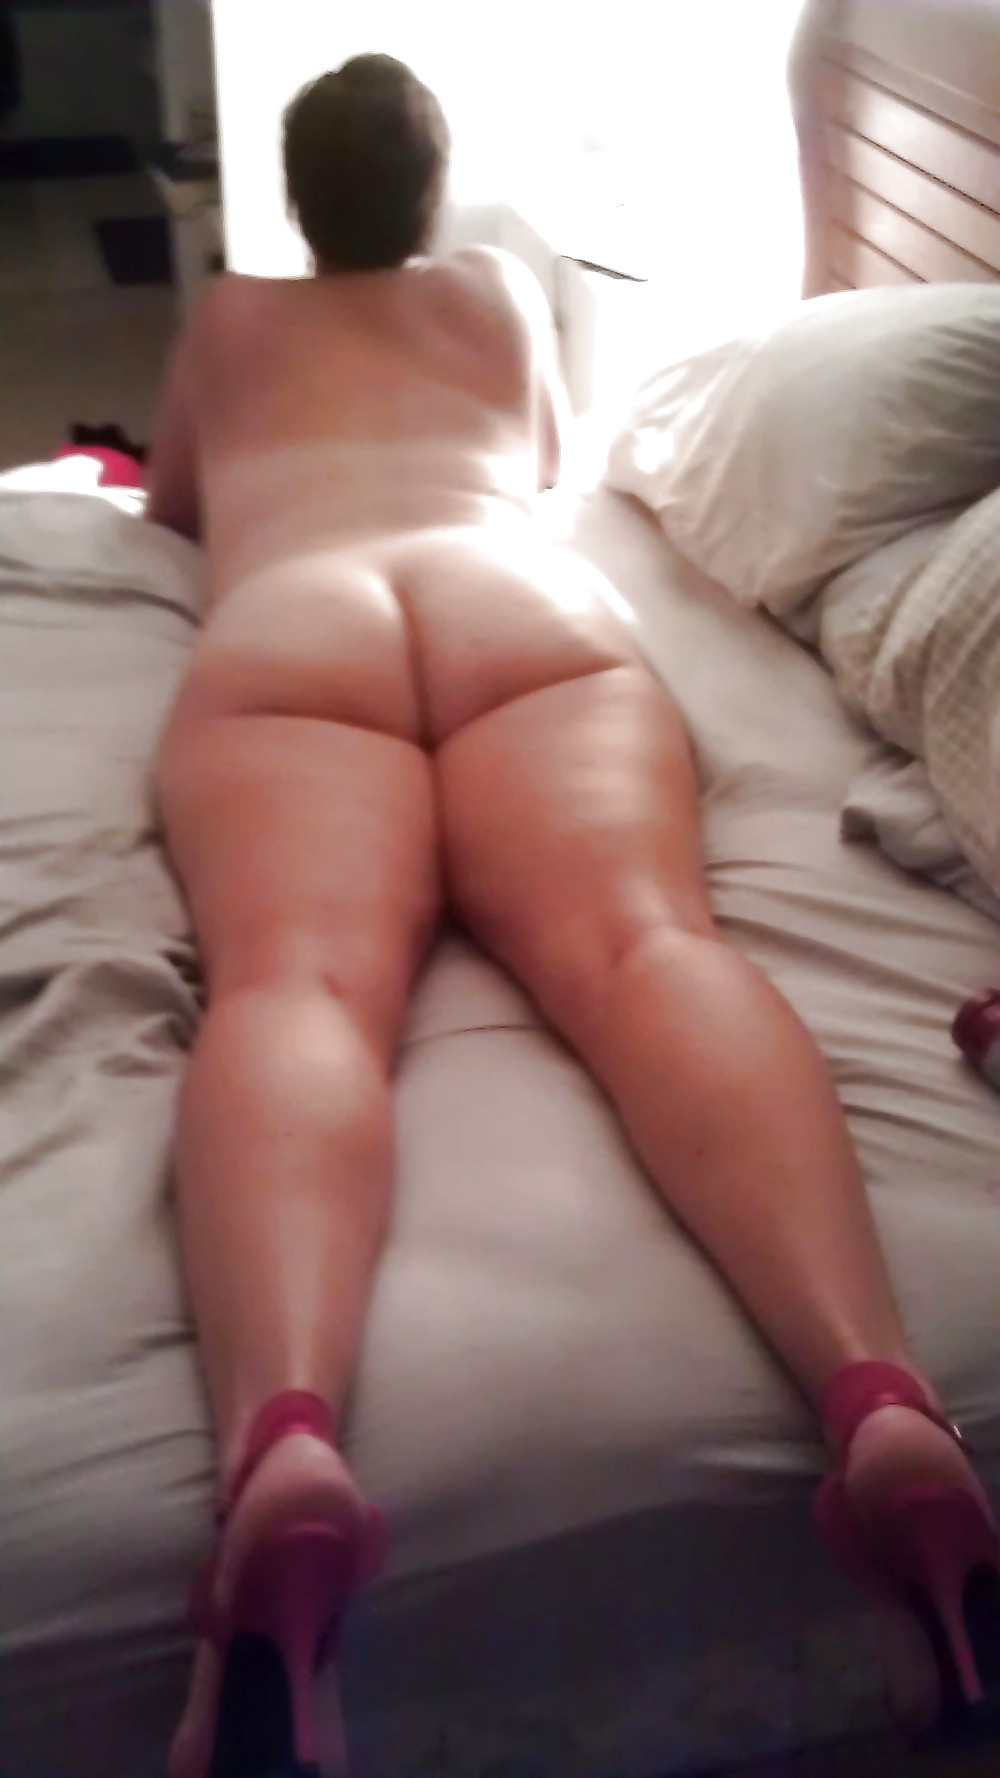 And skinny bbw nude big booty